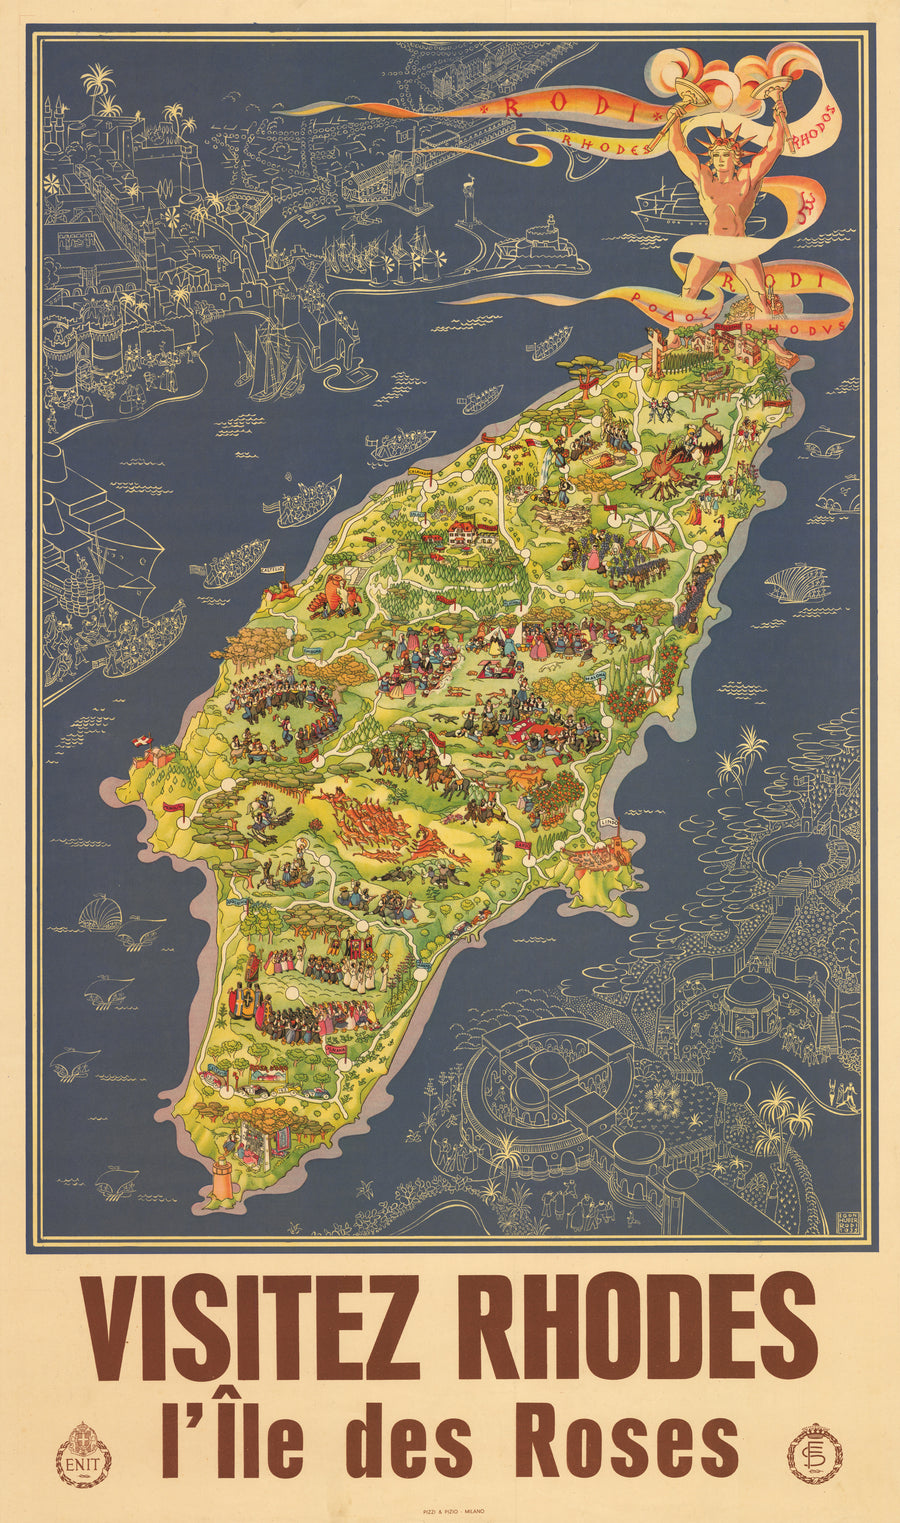 Antique Pictorial Map of Rhodes : Visitez Rhodes l'Ile des Roses By: Egon Huber, Date: 1935